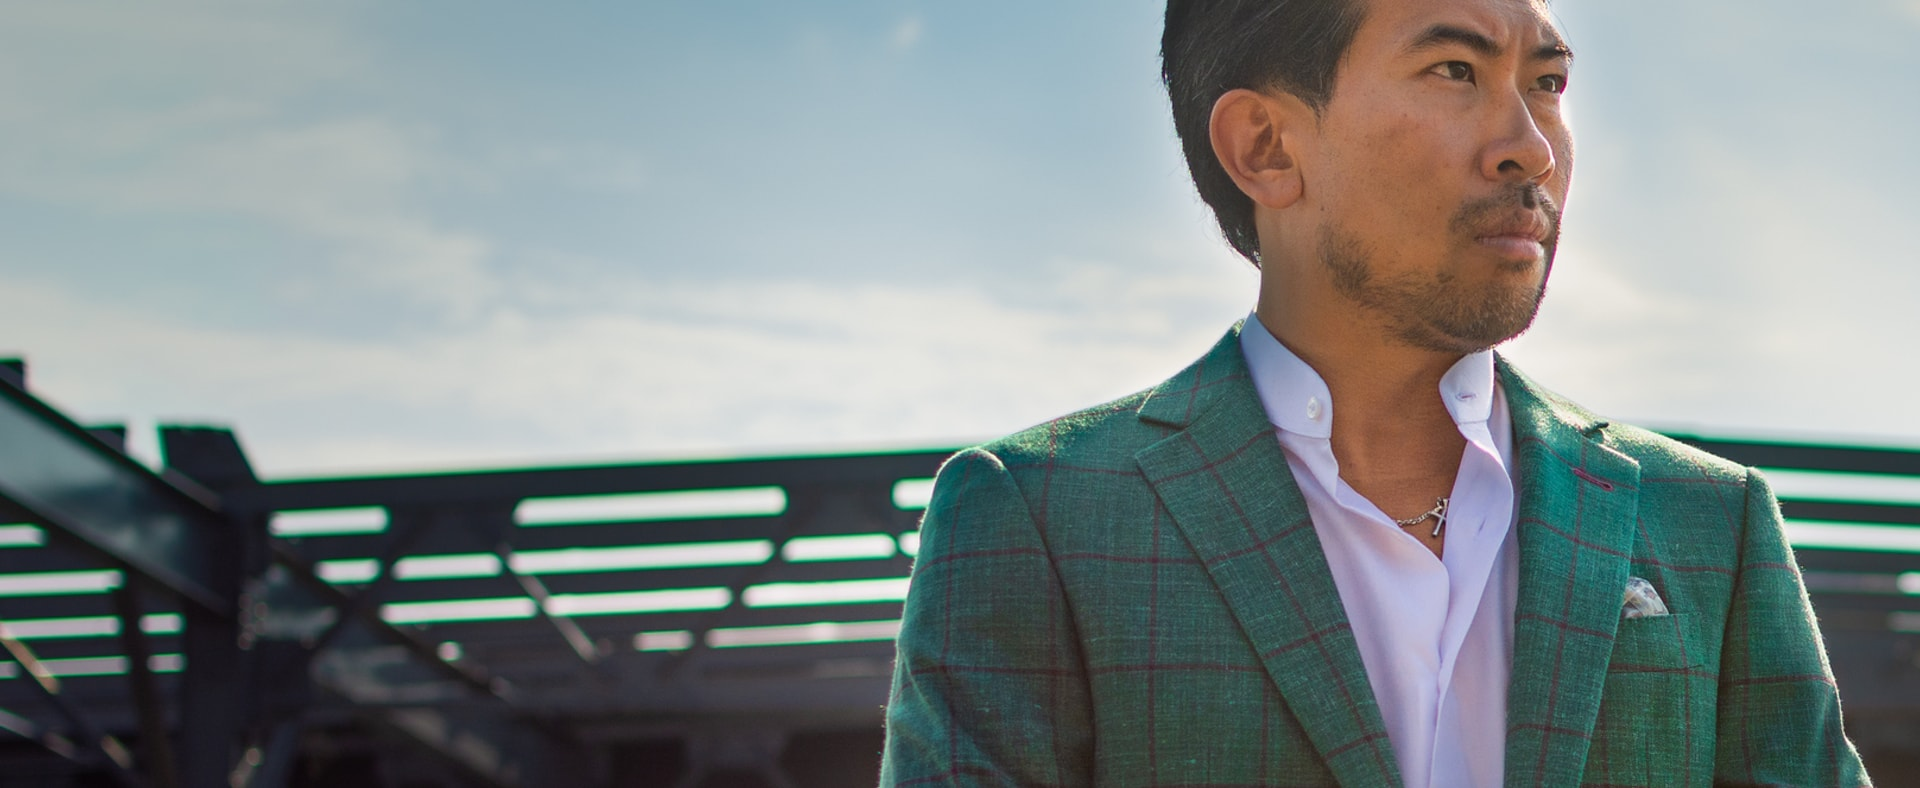 SUITABLEE | Custom Suits & Shirts for Men